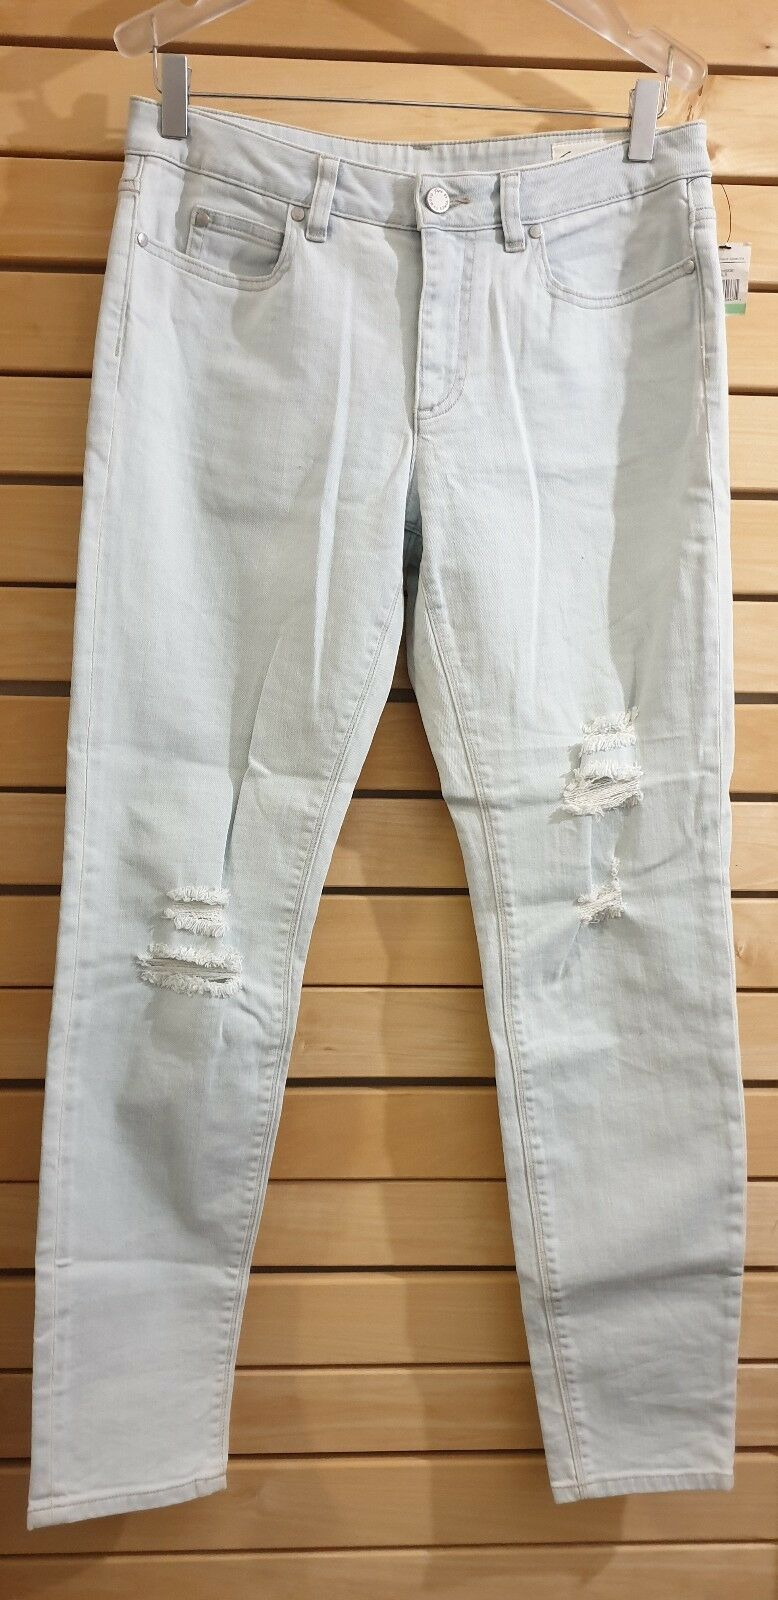 TWO BY VINCE CAMUTO Women's Jean Beachside Essentials Straight Size 29 8 New